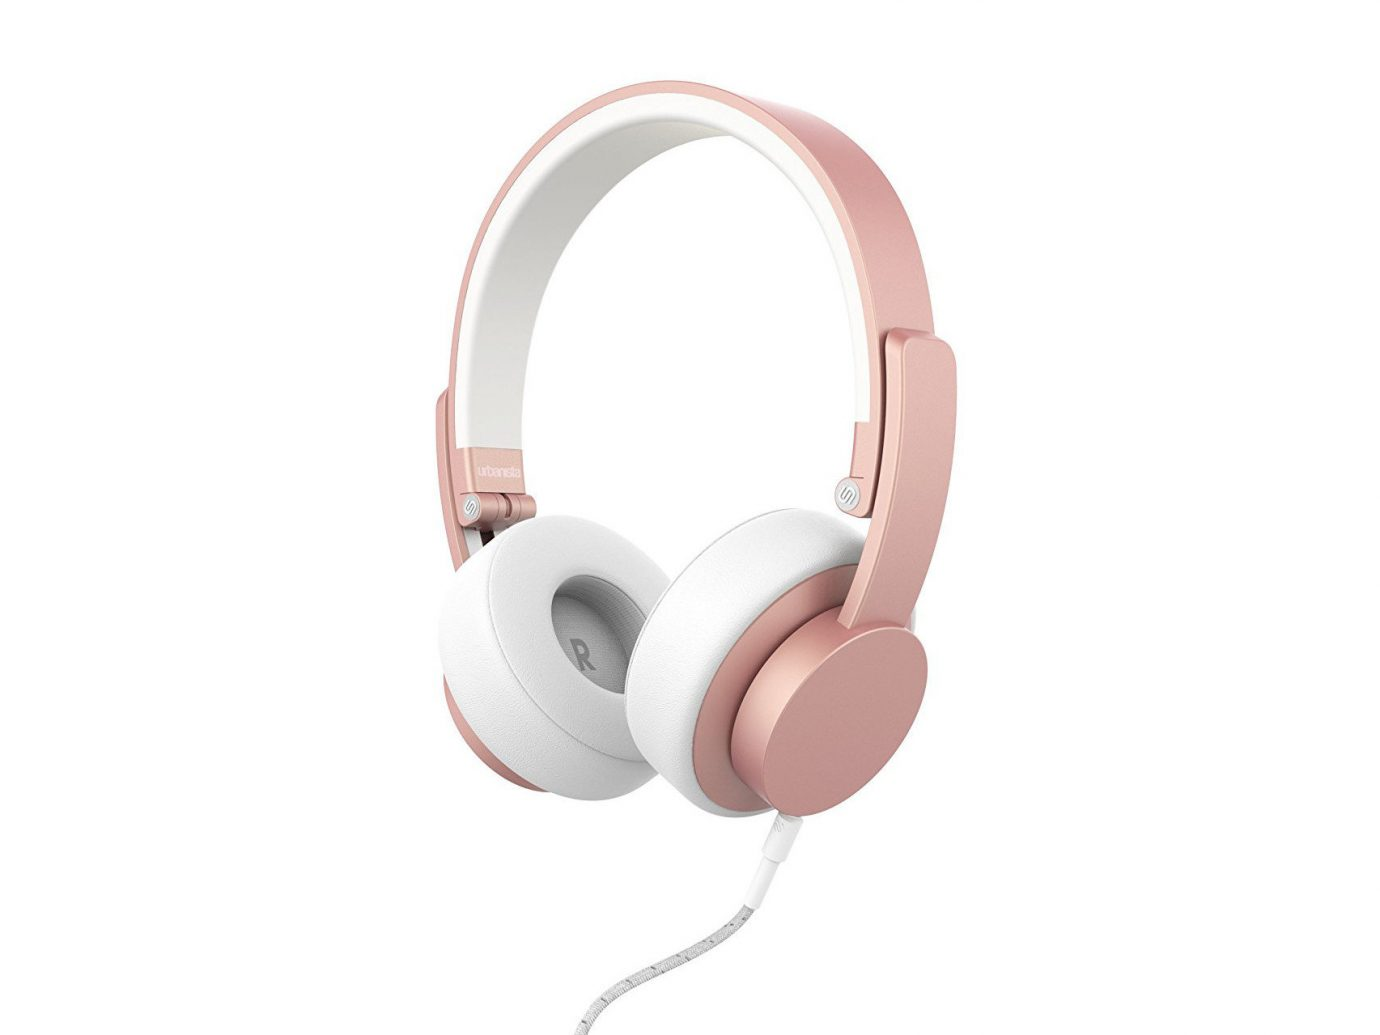 Style + Design headphones audio equipment earphone technology audio electronic device headset product design product